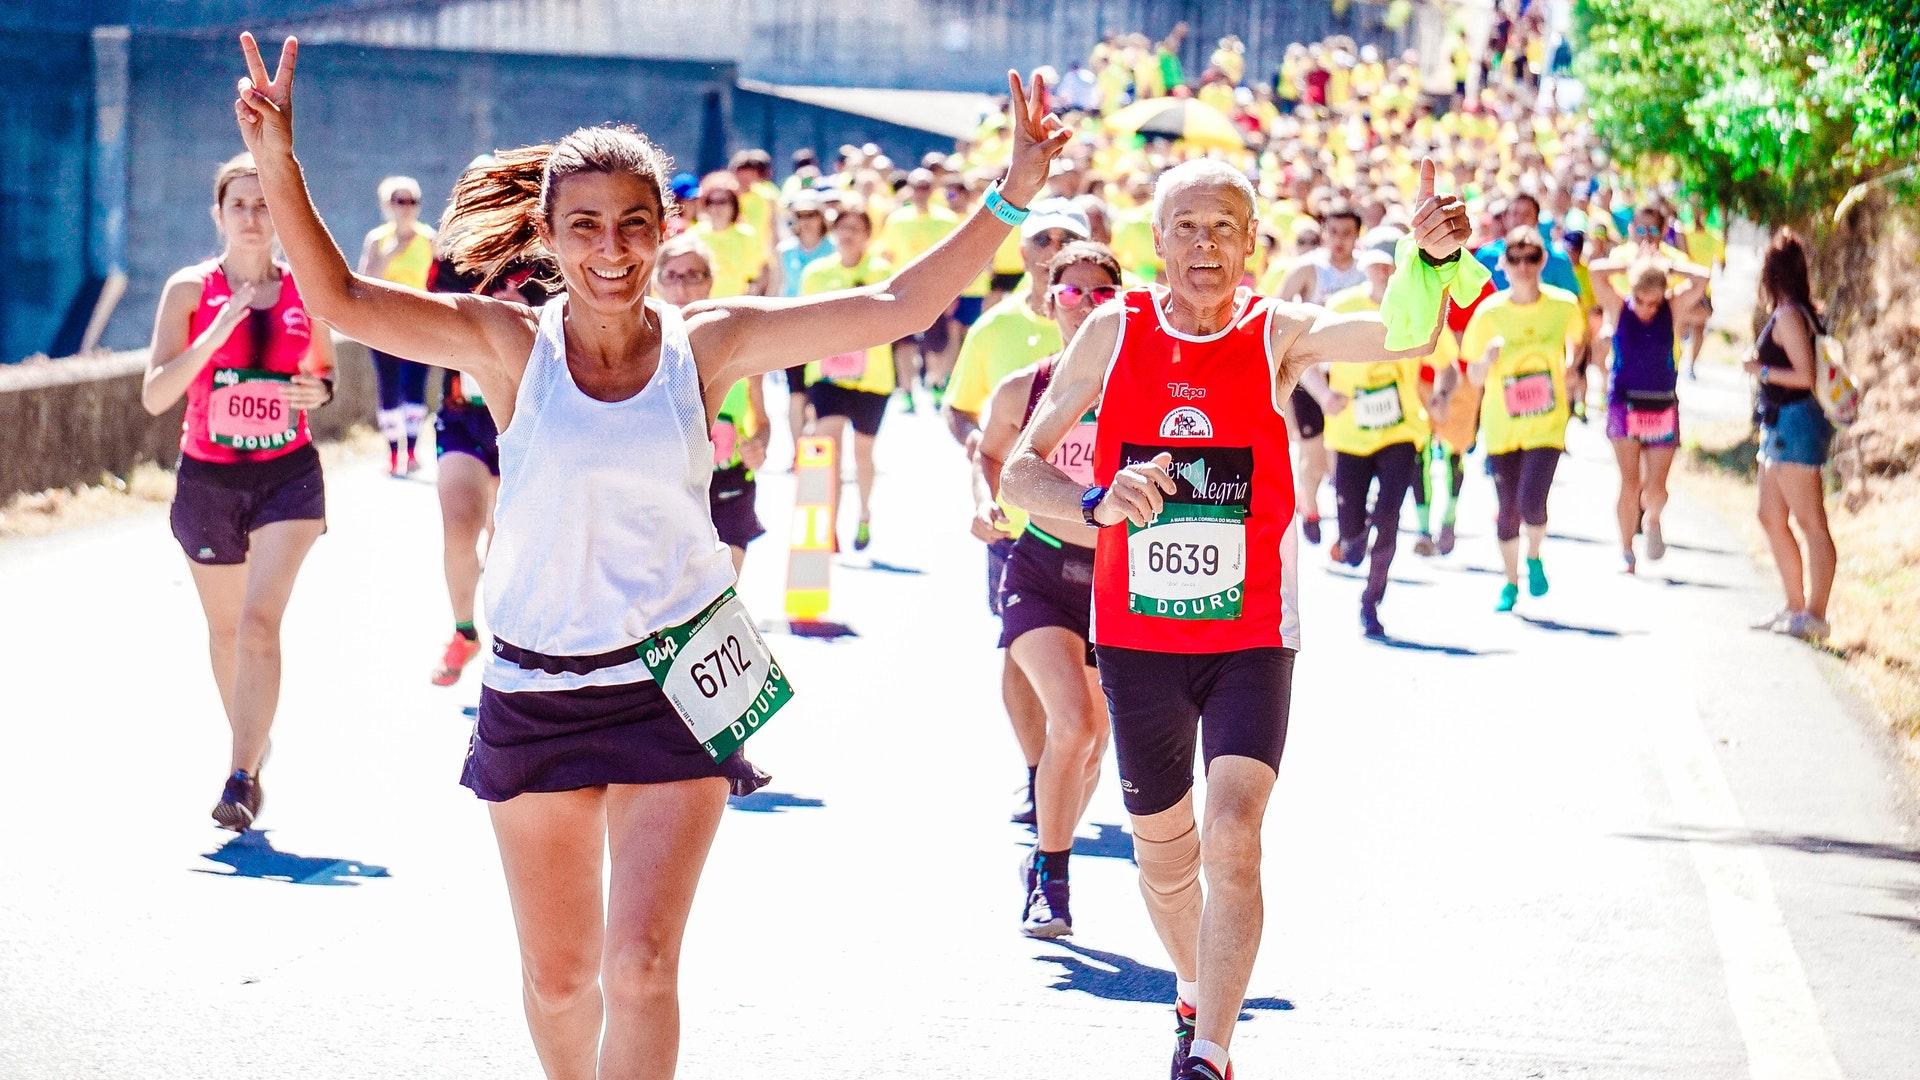 A woman finishing a race. She got back into running and met her goals.